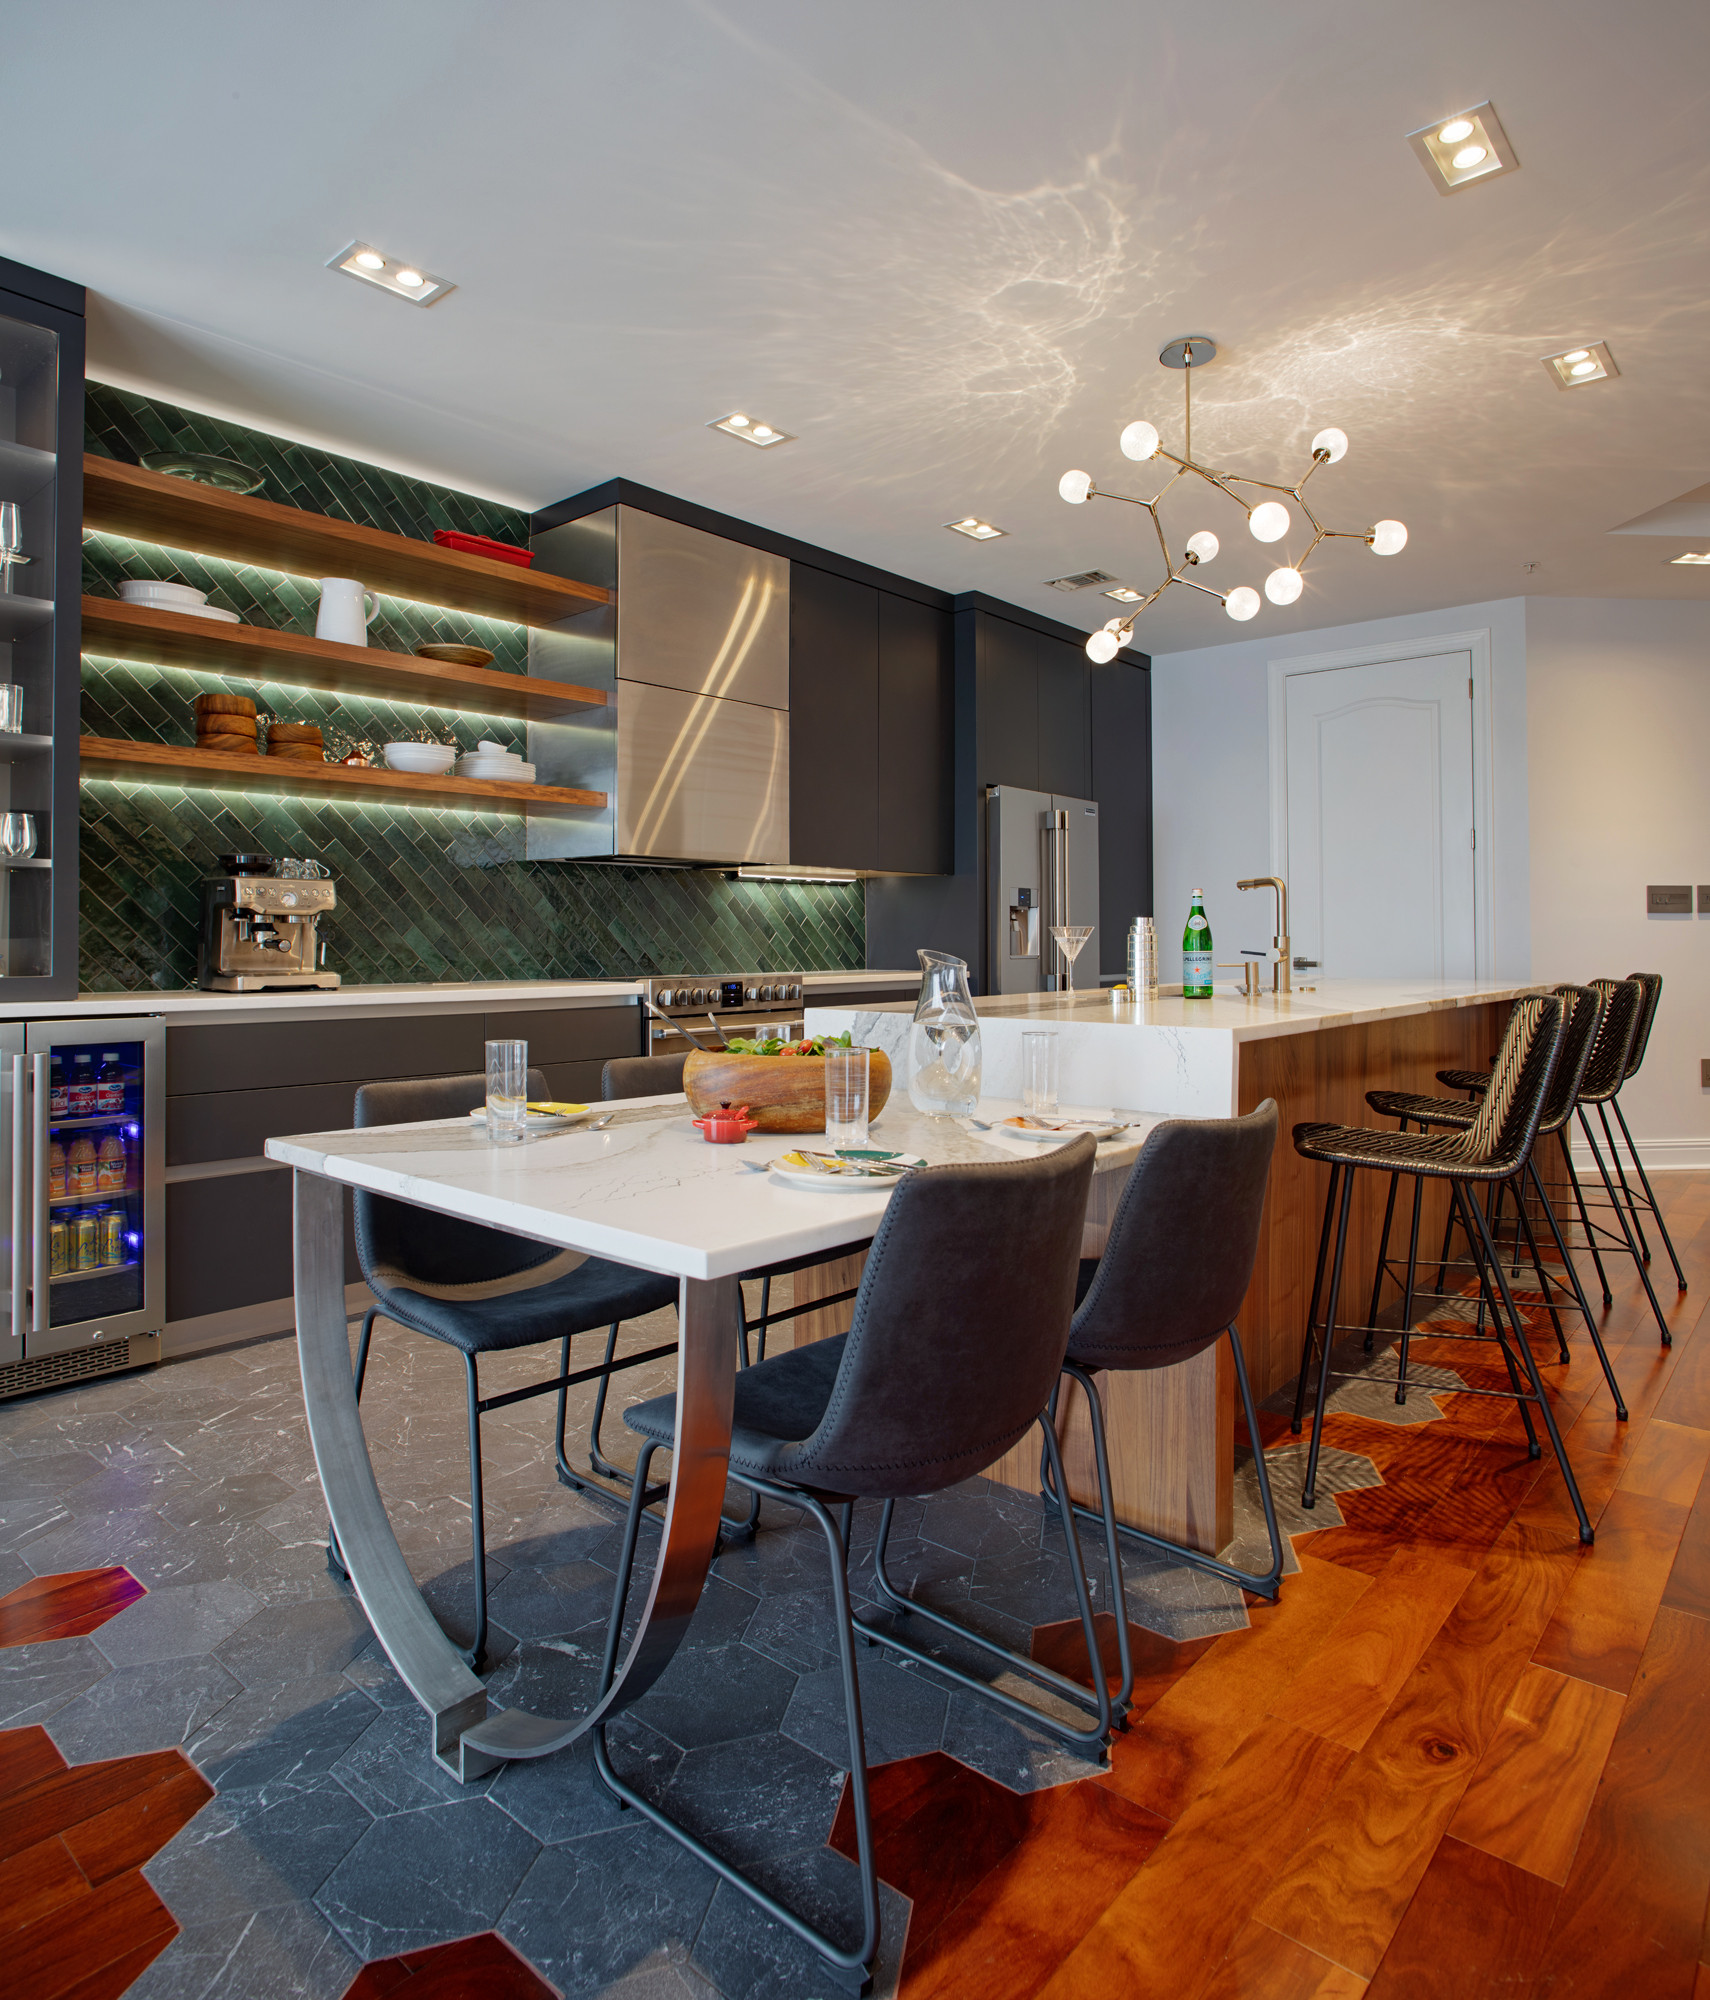 Kitchen and living spaces integrated